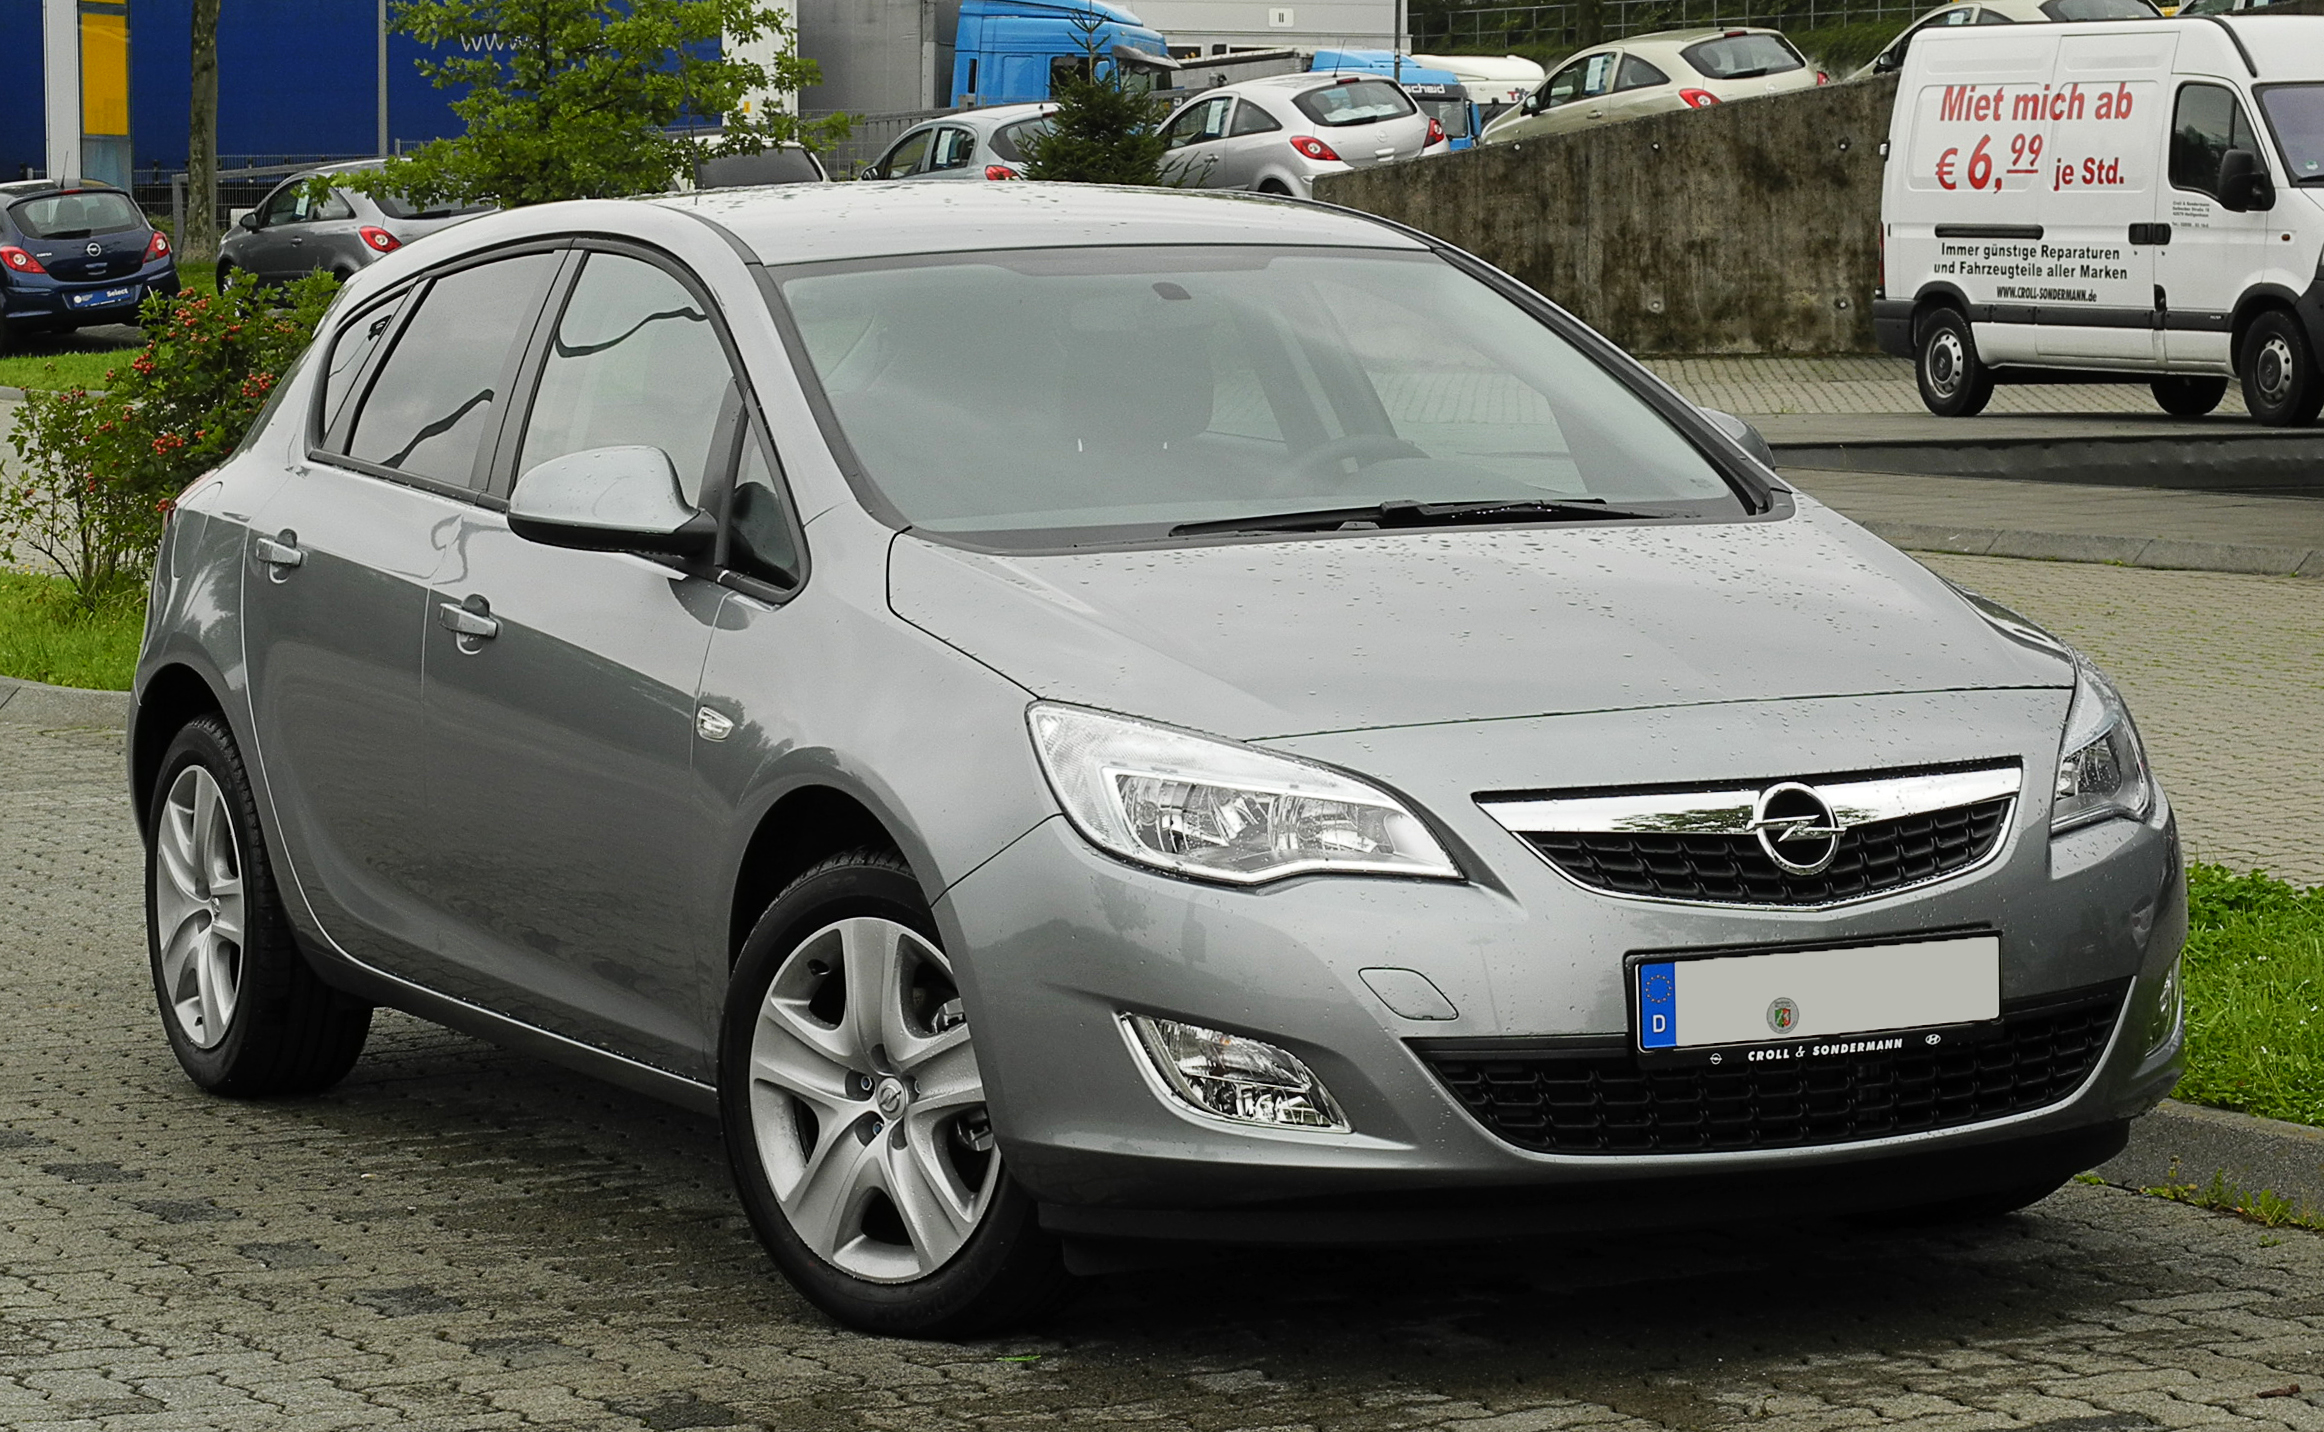 2012 Opel Astra j – pictures, information and specs - Auto ...